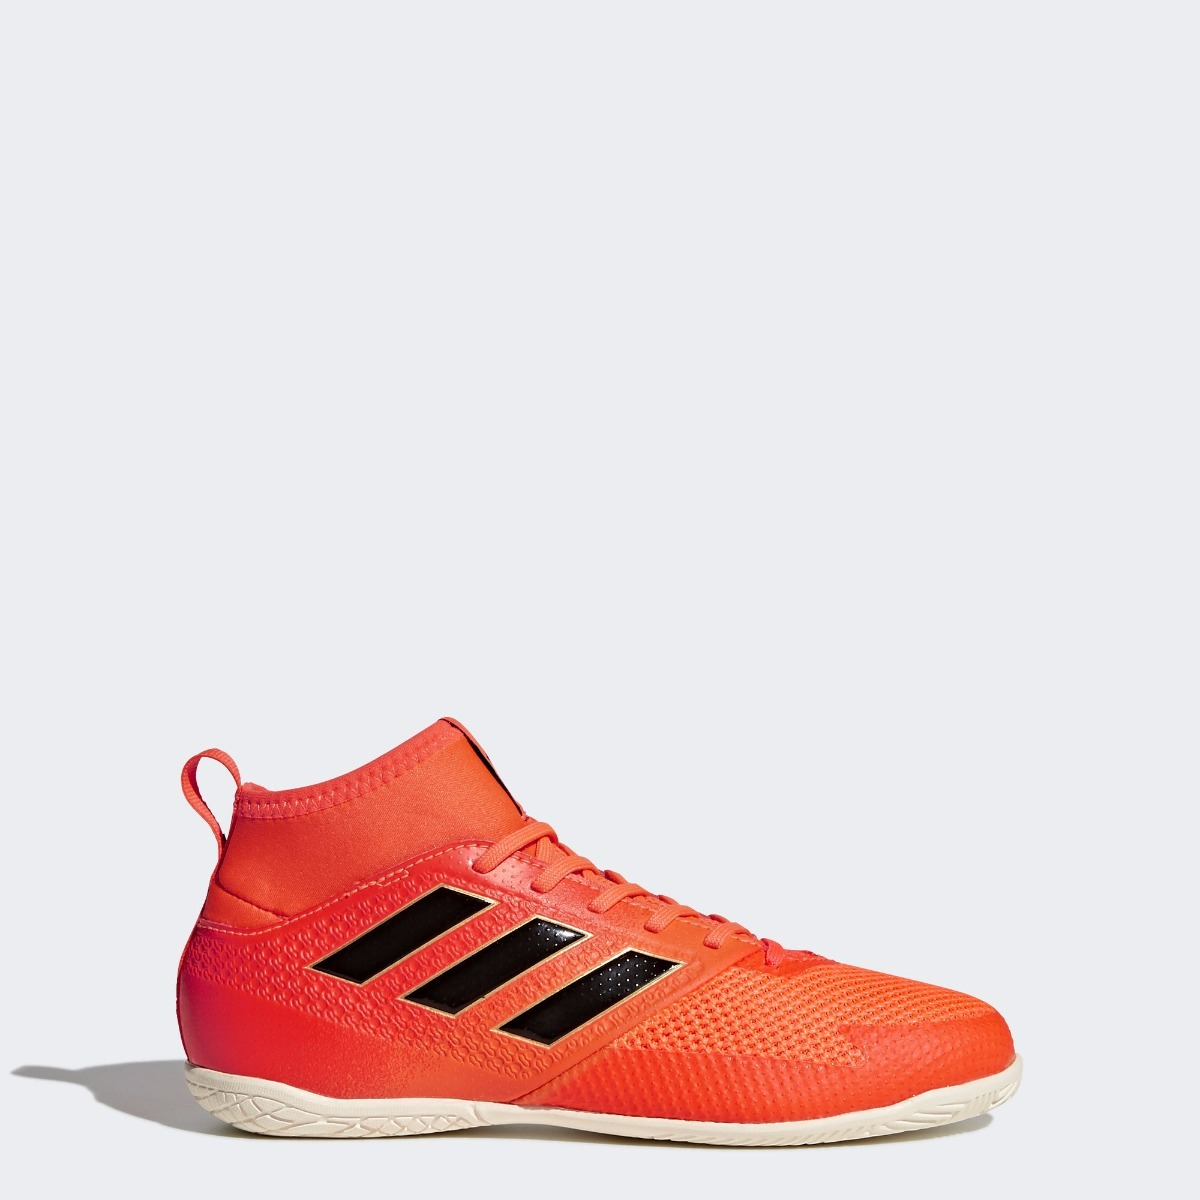 sports shoes 4db13 5848d Tenis adidas Ace Tango 17.3 Indoor Jnr Naranja 2017 ...